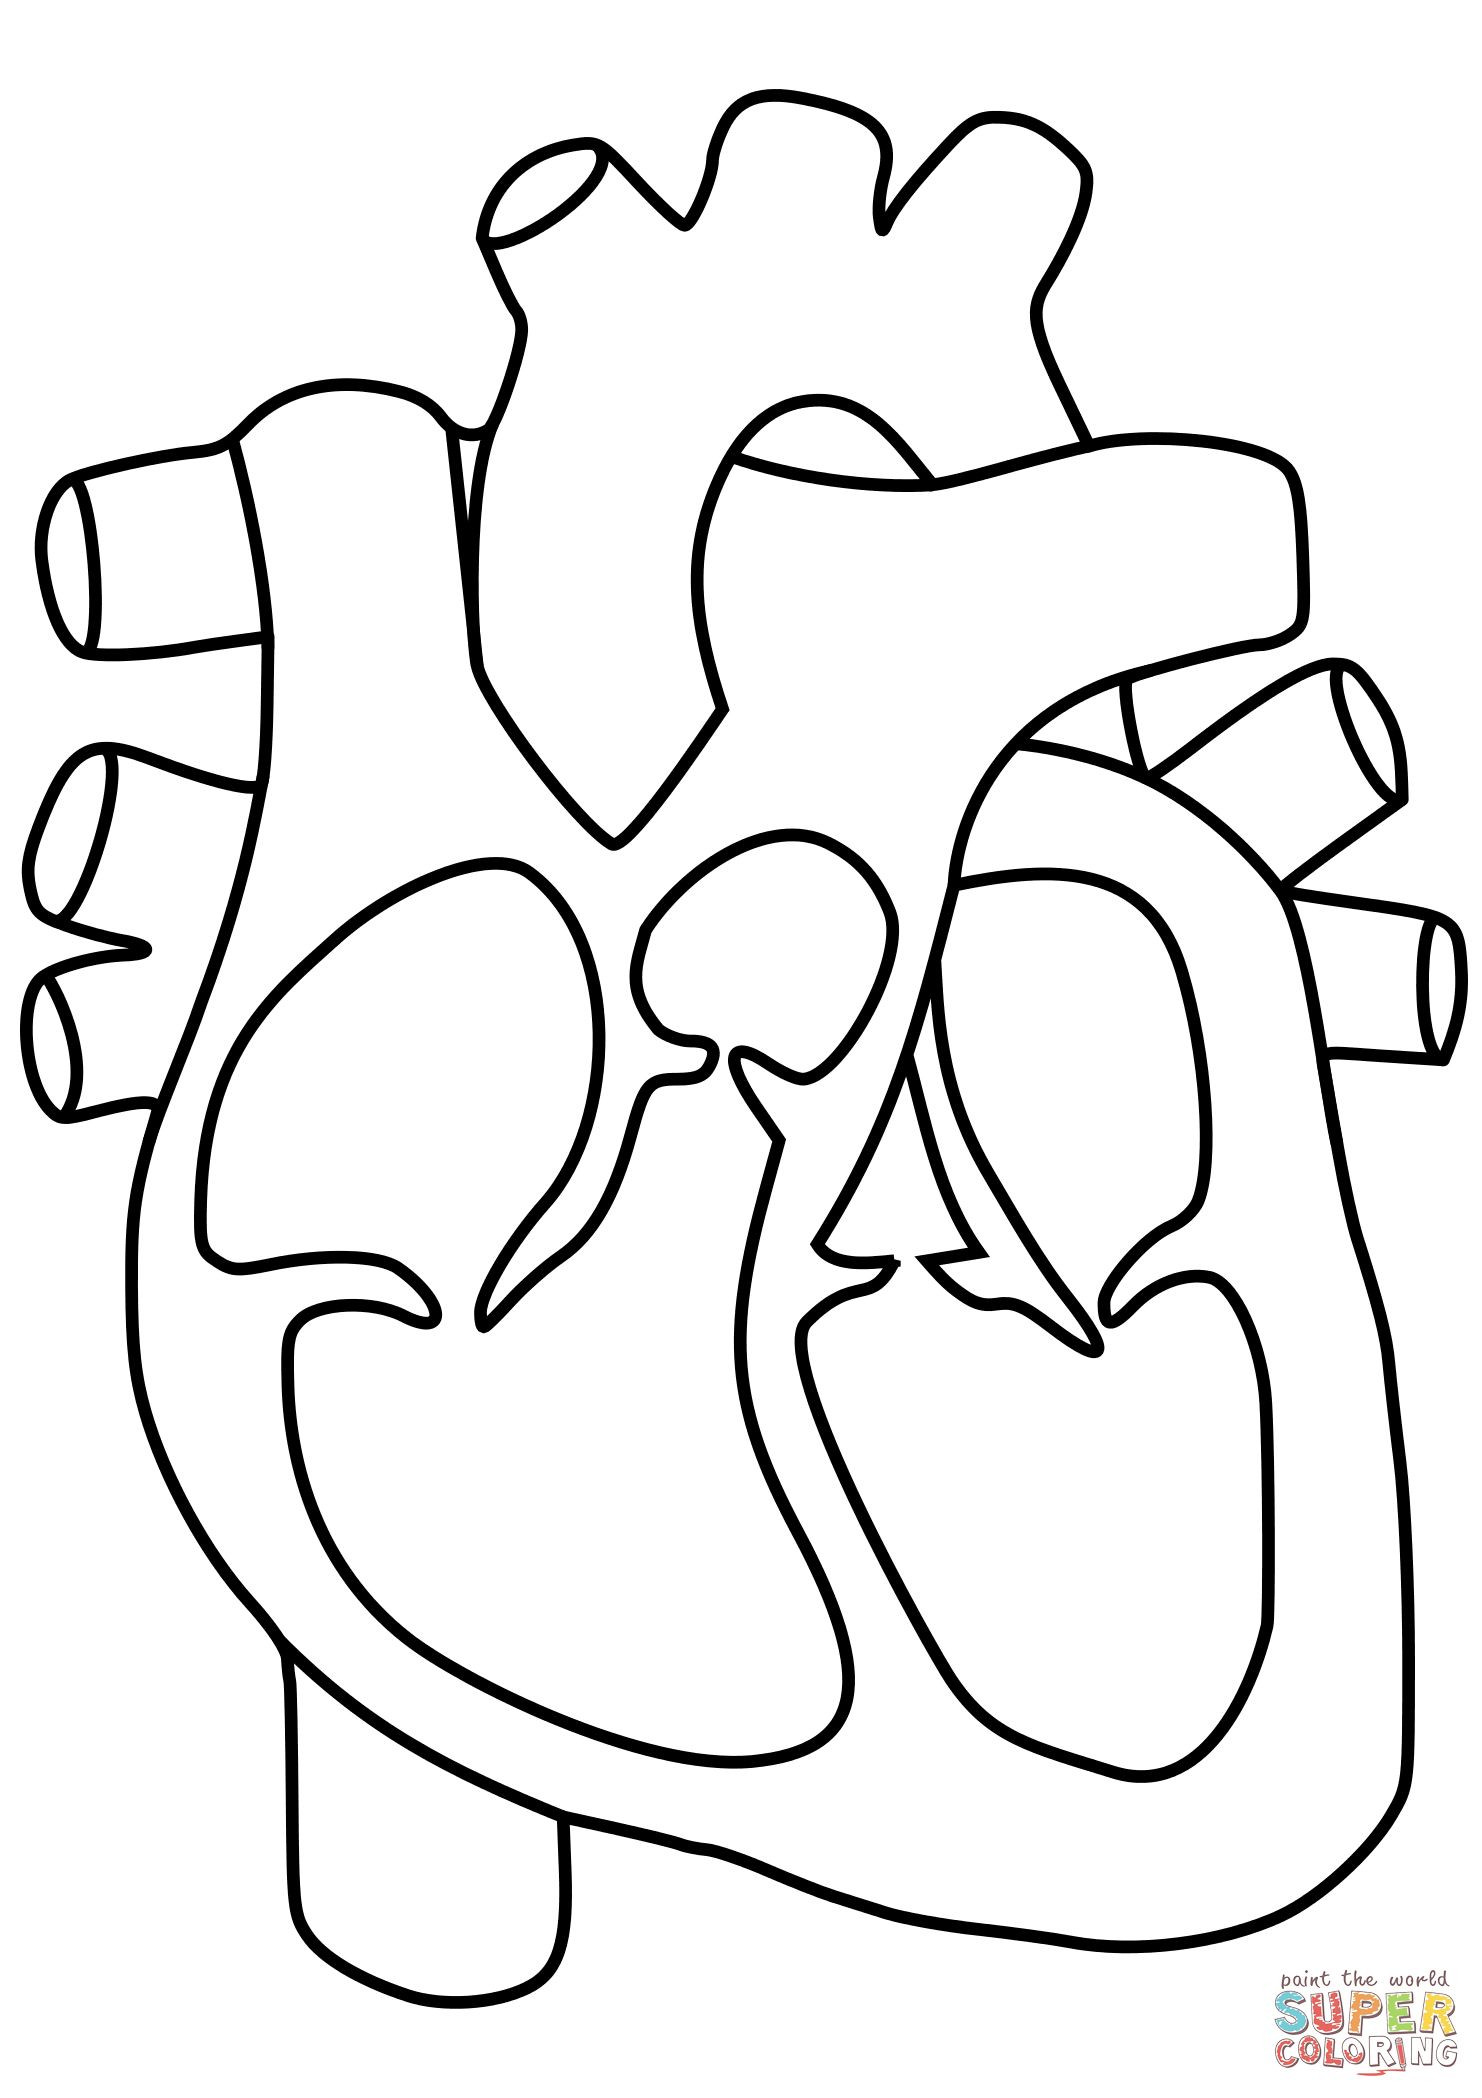 Printable Heart Diagram Human Heart Coloring Pages Human Heart Coloring Page Human